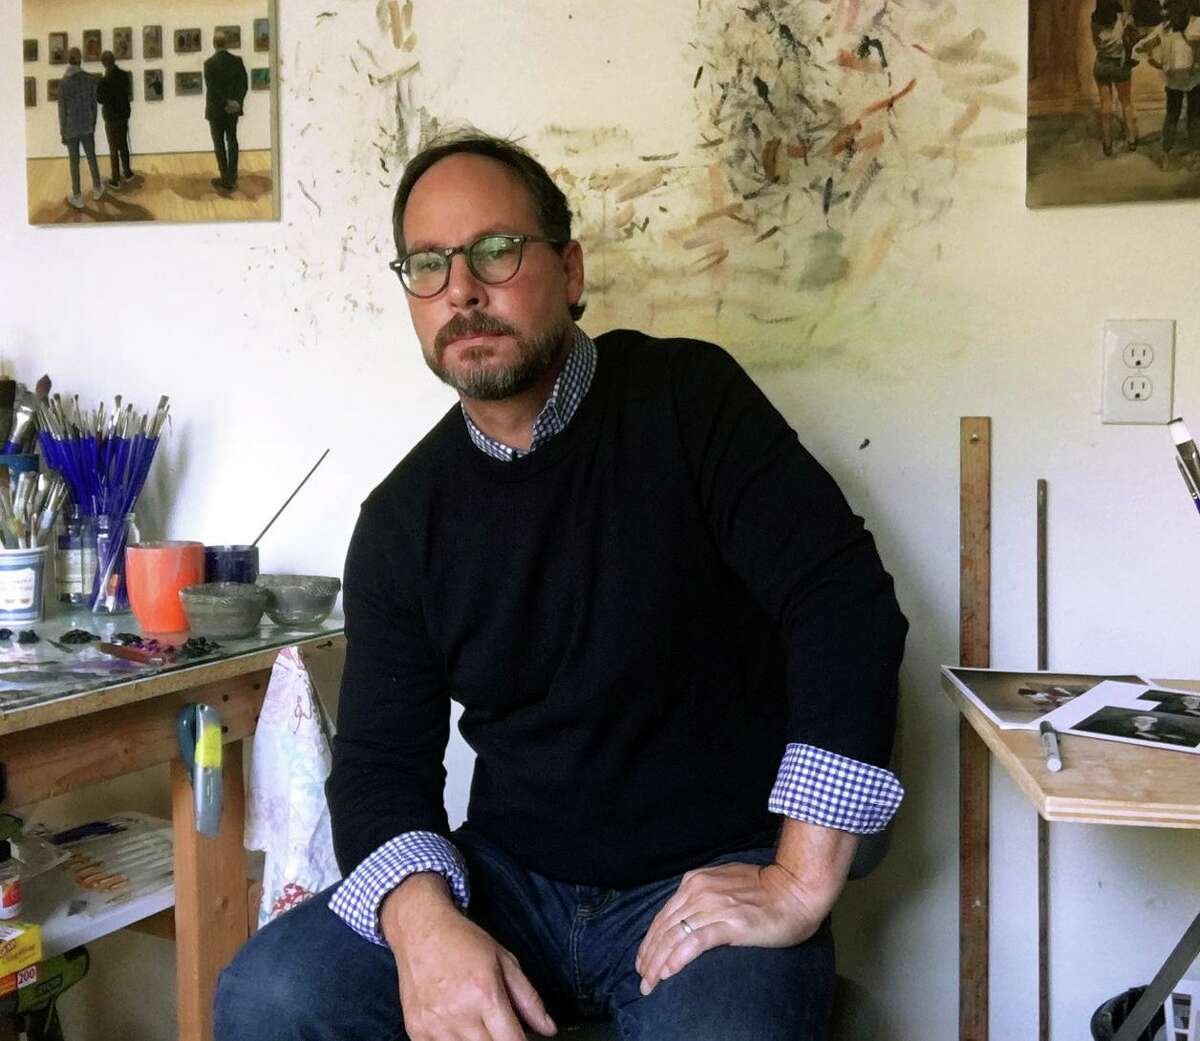 Joe Fig, an artist and author known for work that explores the artistic creative process and the spaces where art is made, will be featured in a Sept. 10 Zoom discussion hosted by the Bruce Museum.